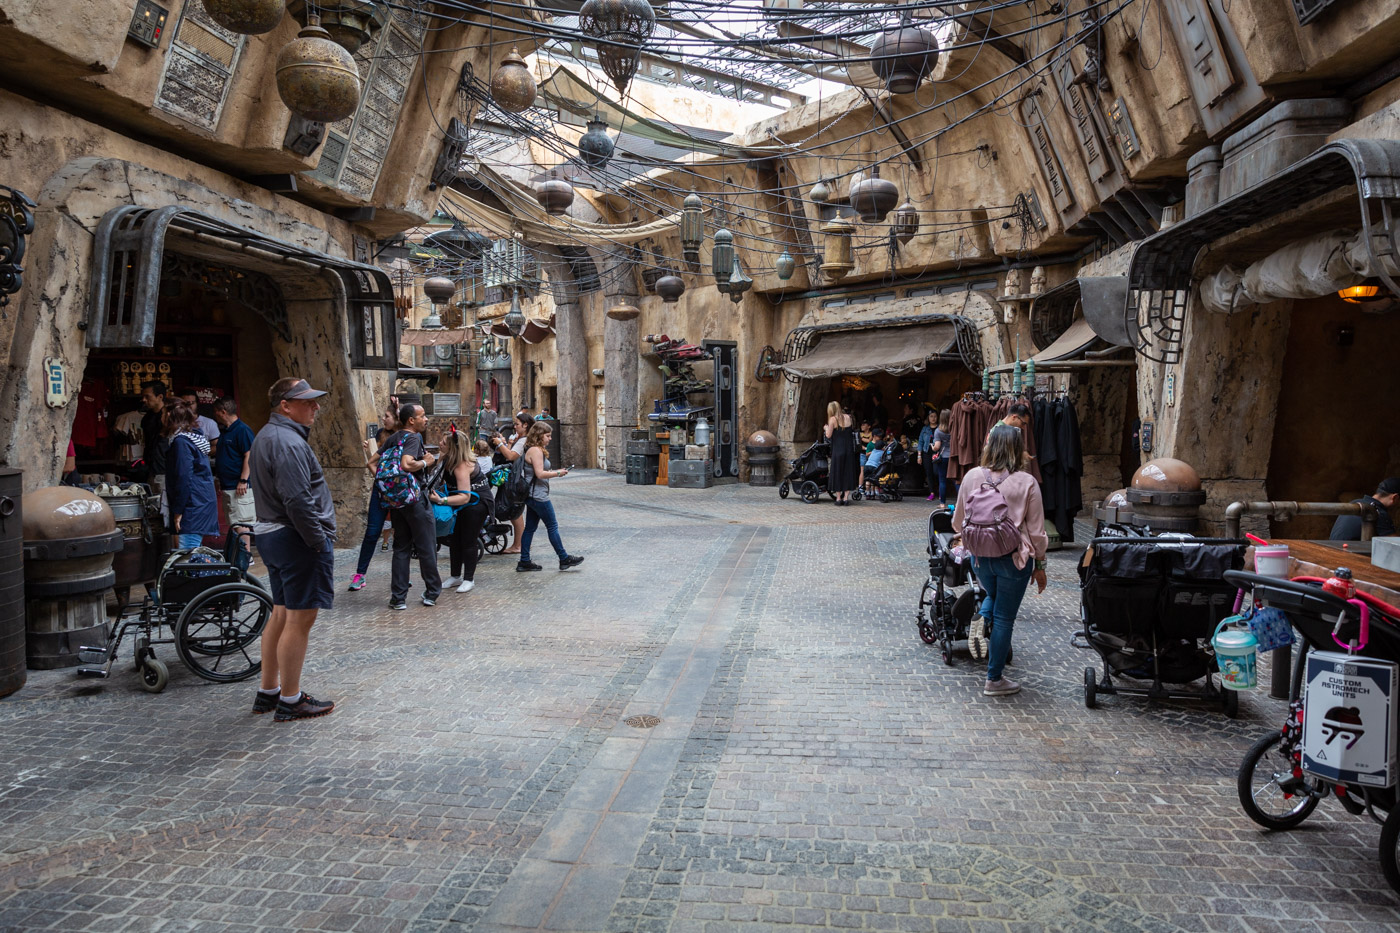 The Market inside Disneyland's Galaxy's Edge